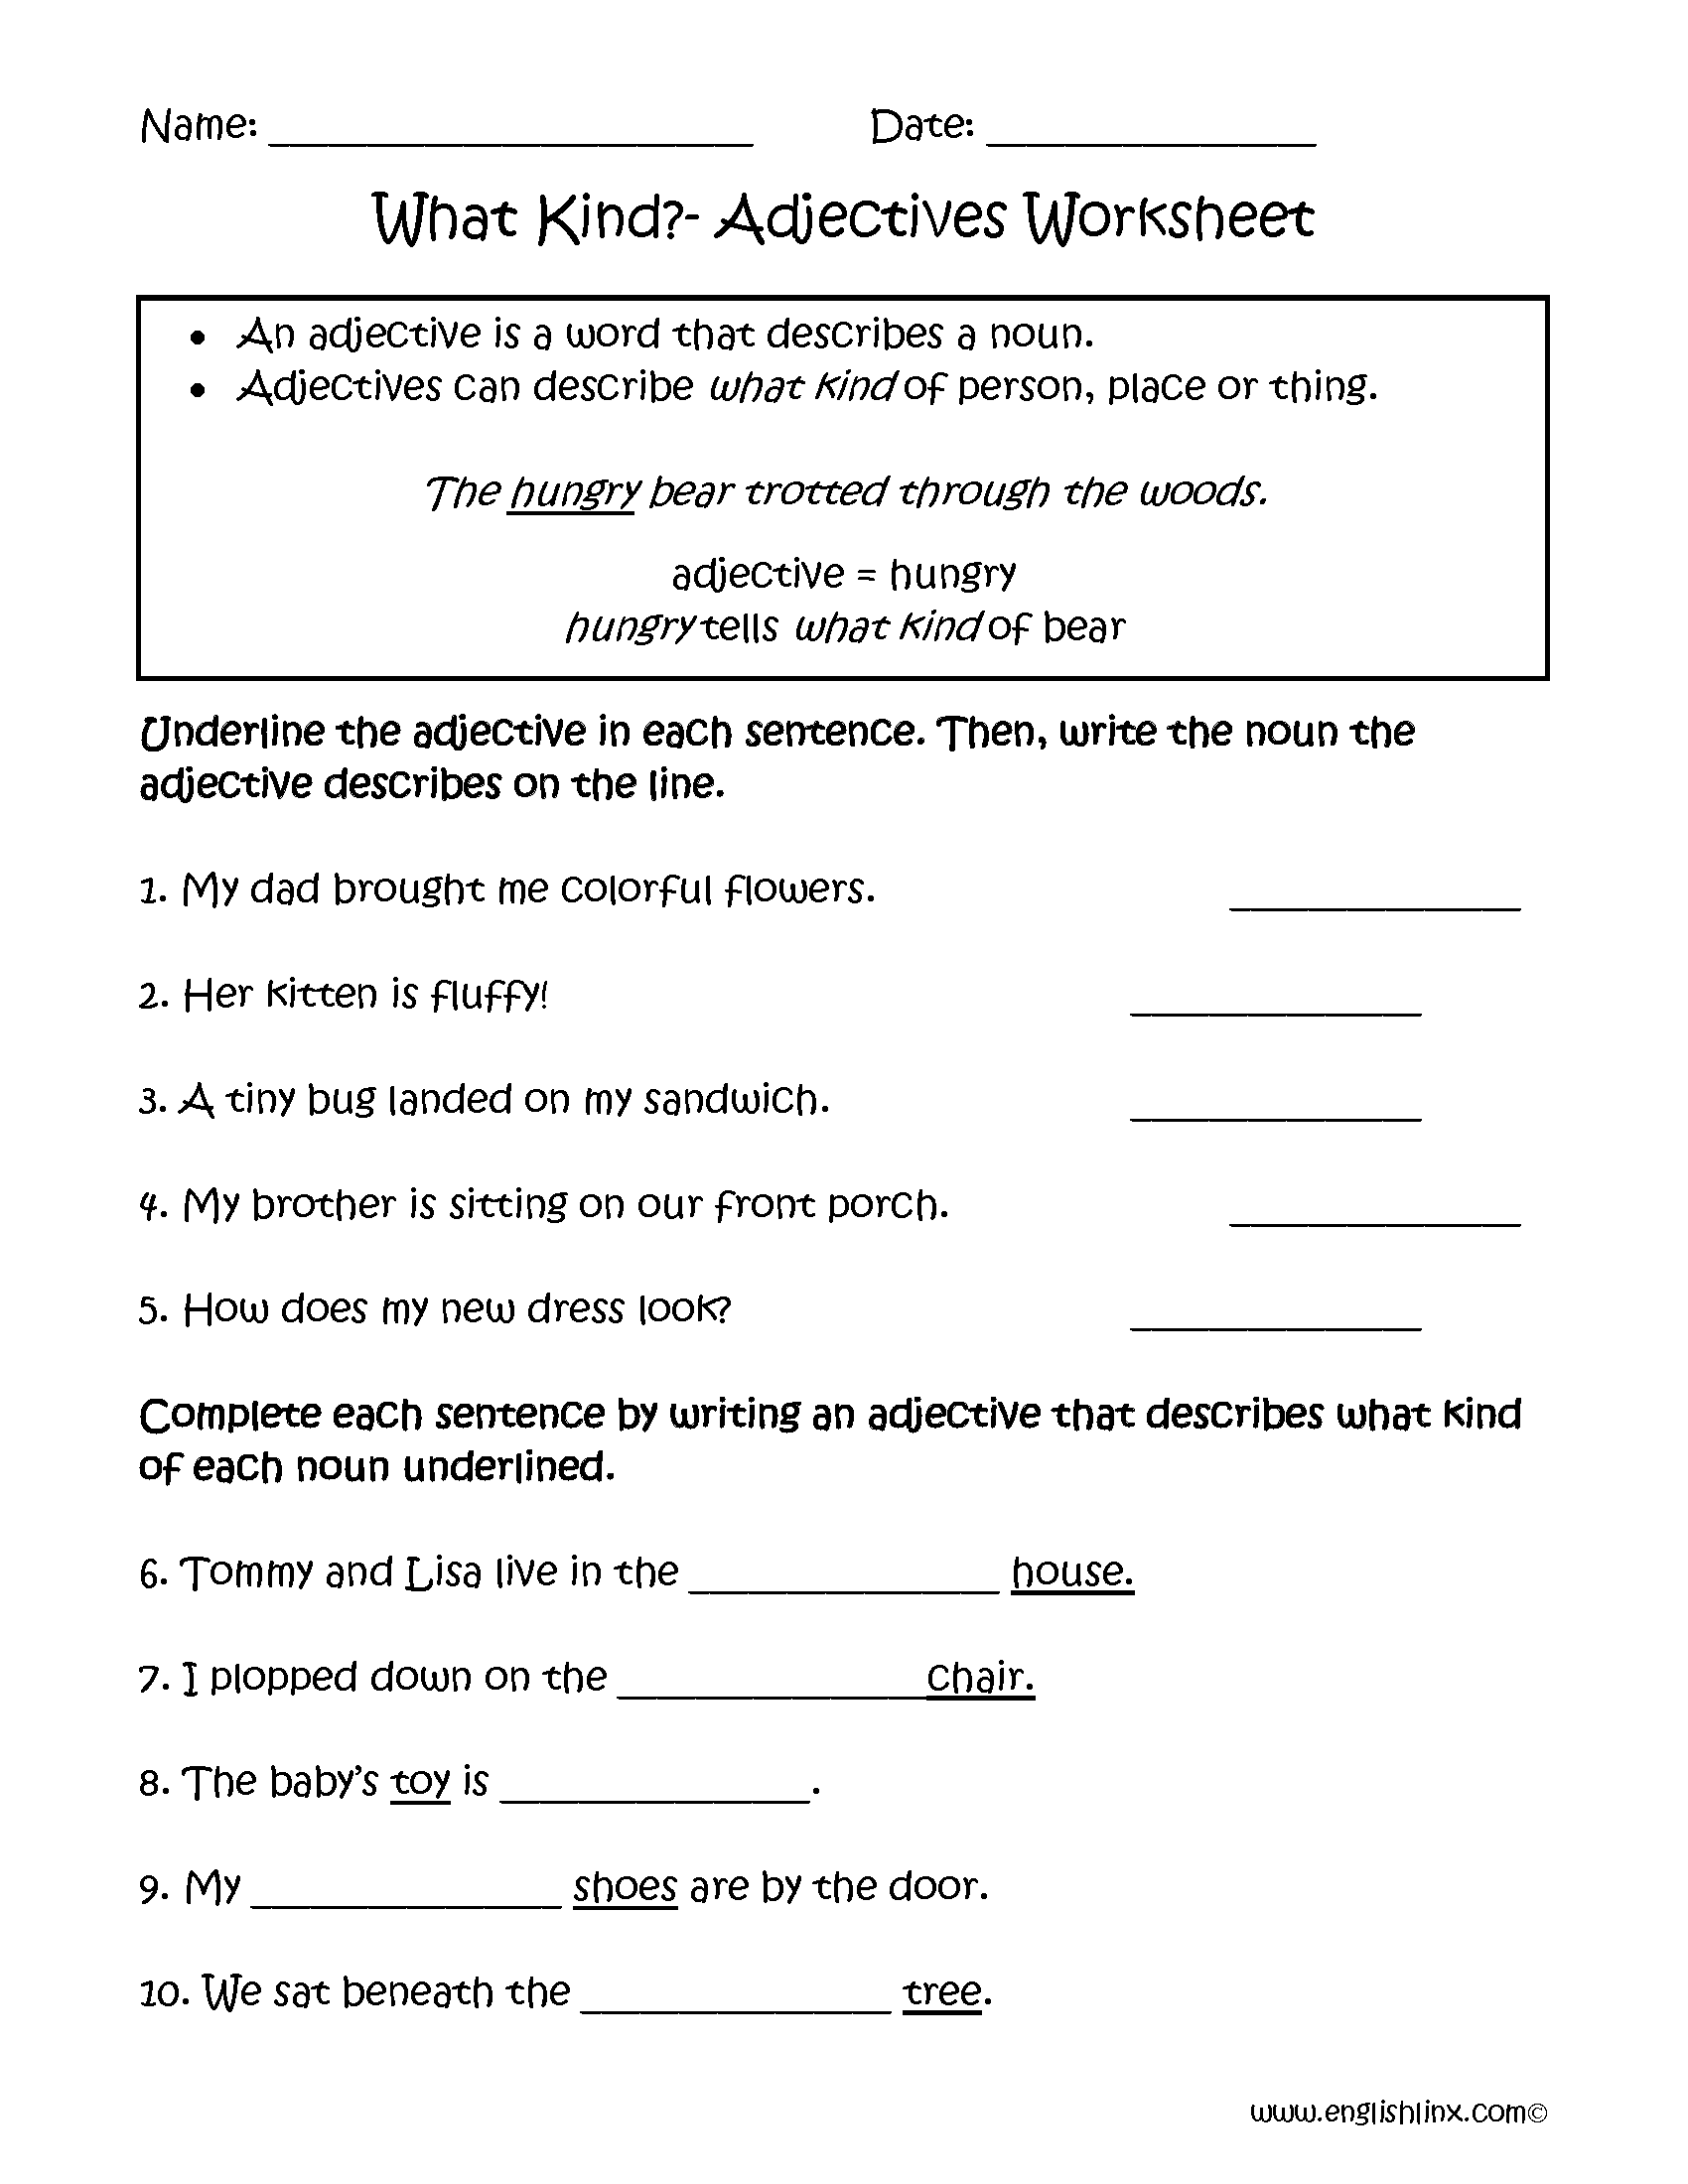 Worksheet Adjective Worksheets Grade 2 adjectives worksheets regular worksheets